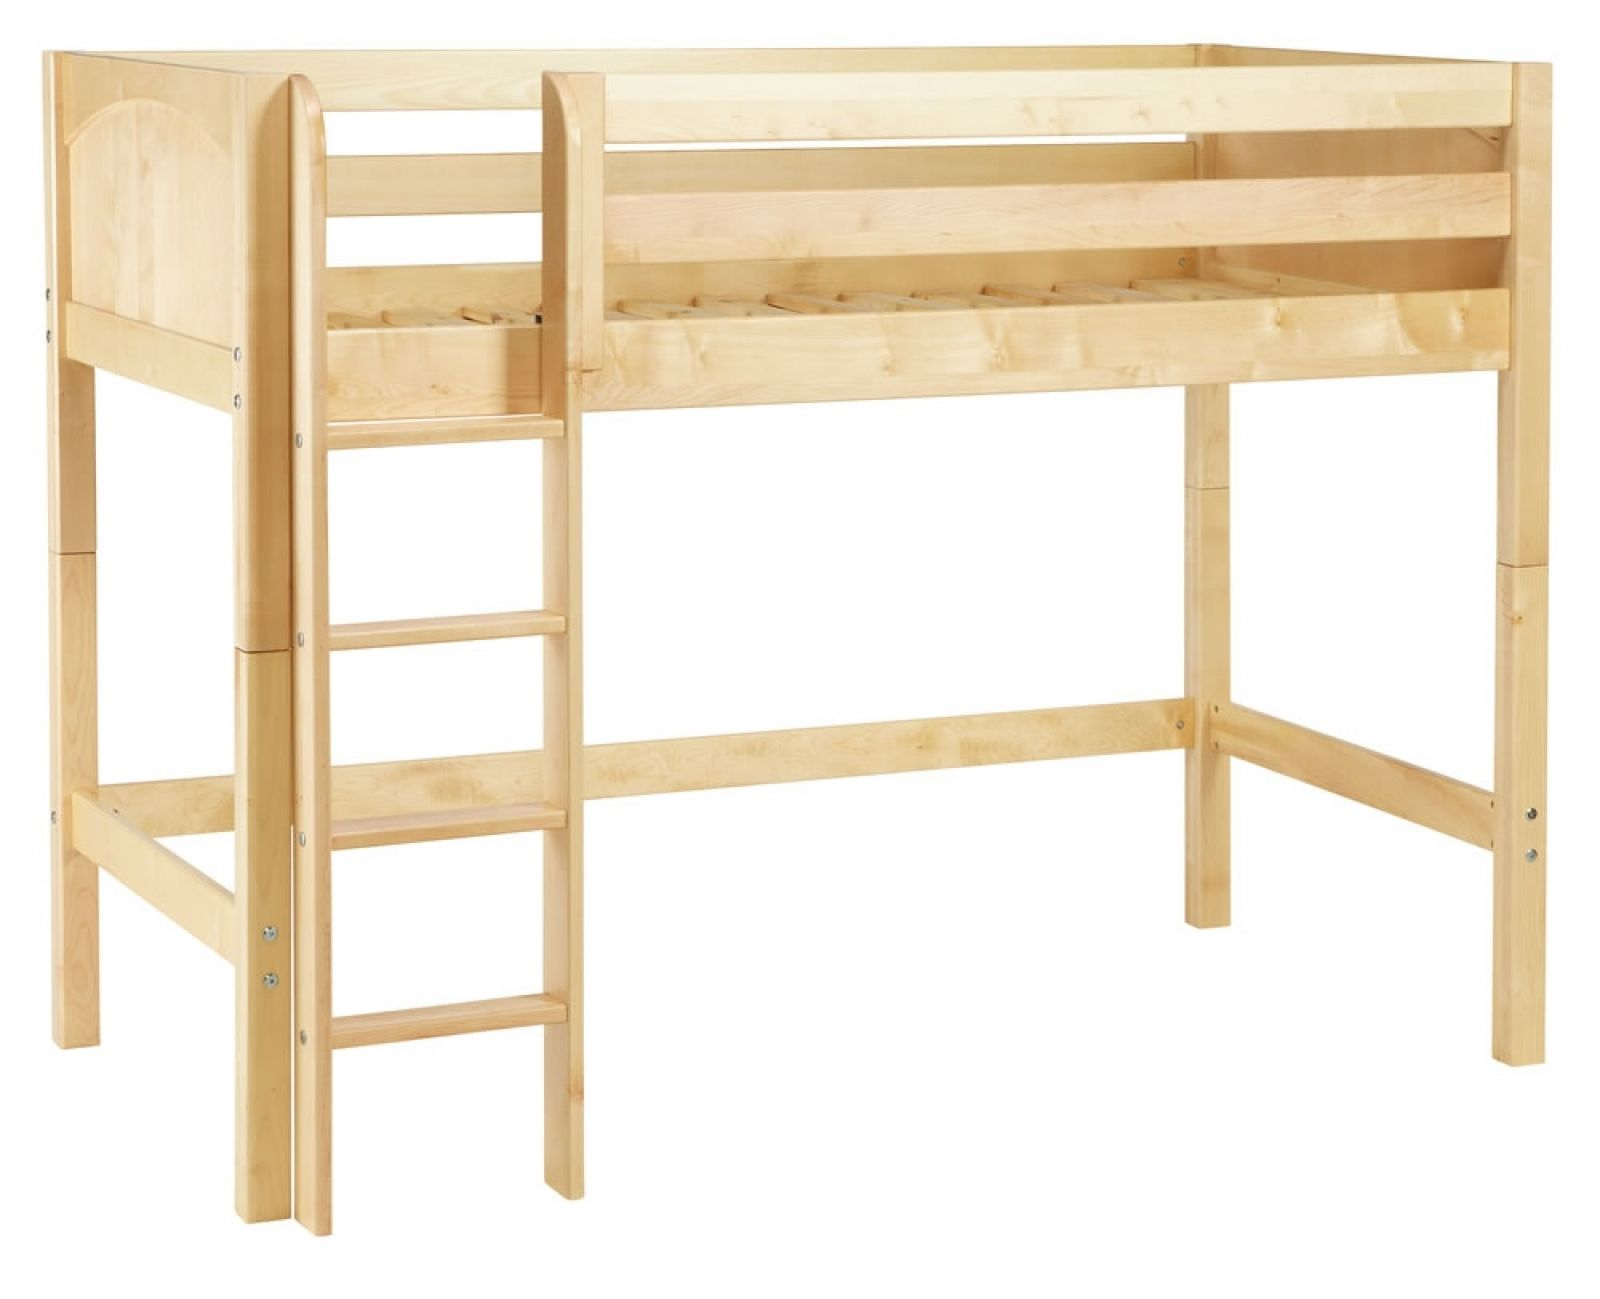 Full Loft Bed Plans Easy Diy Woodworking Plans How To Build A Full